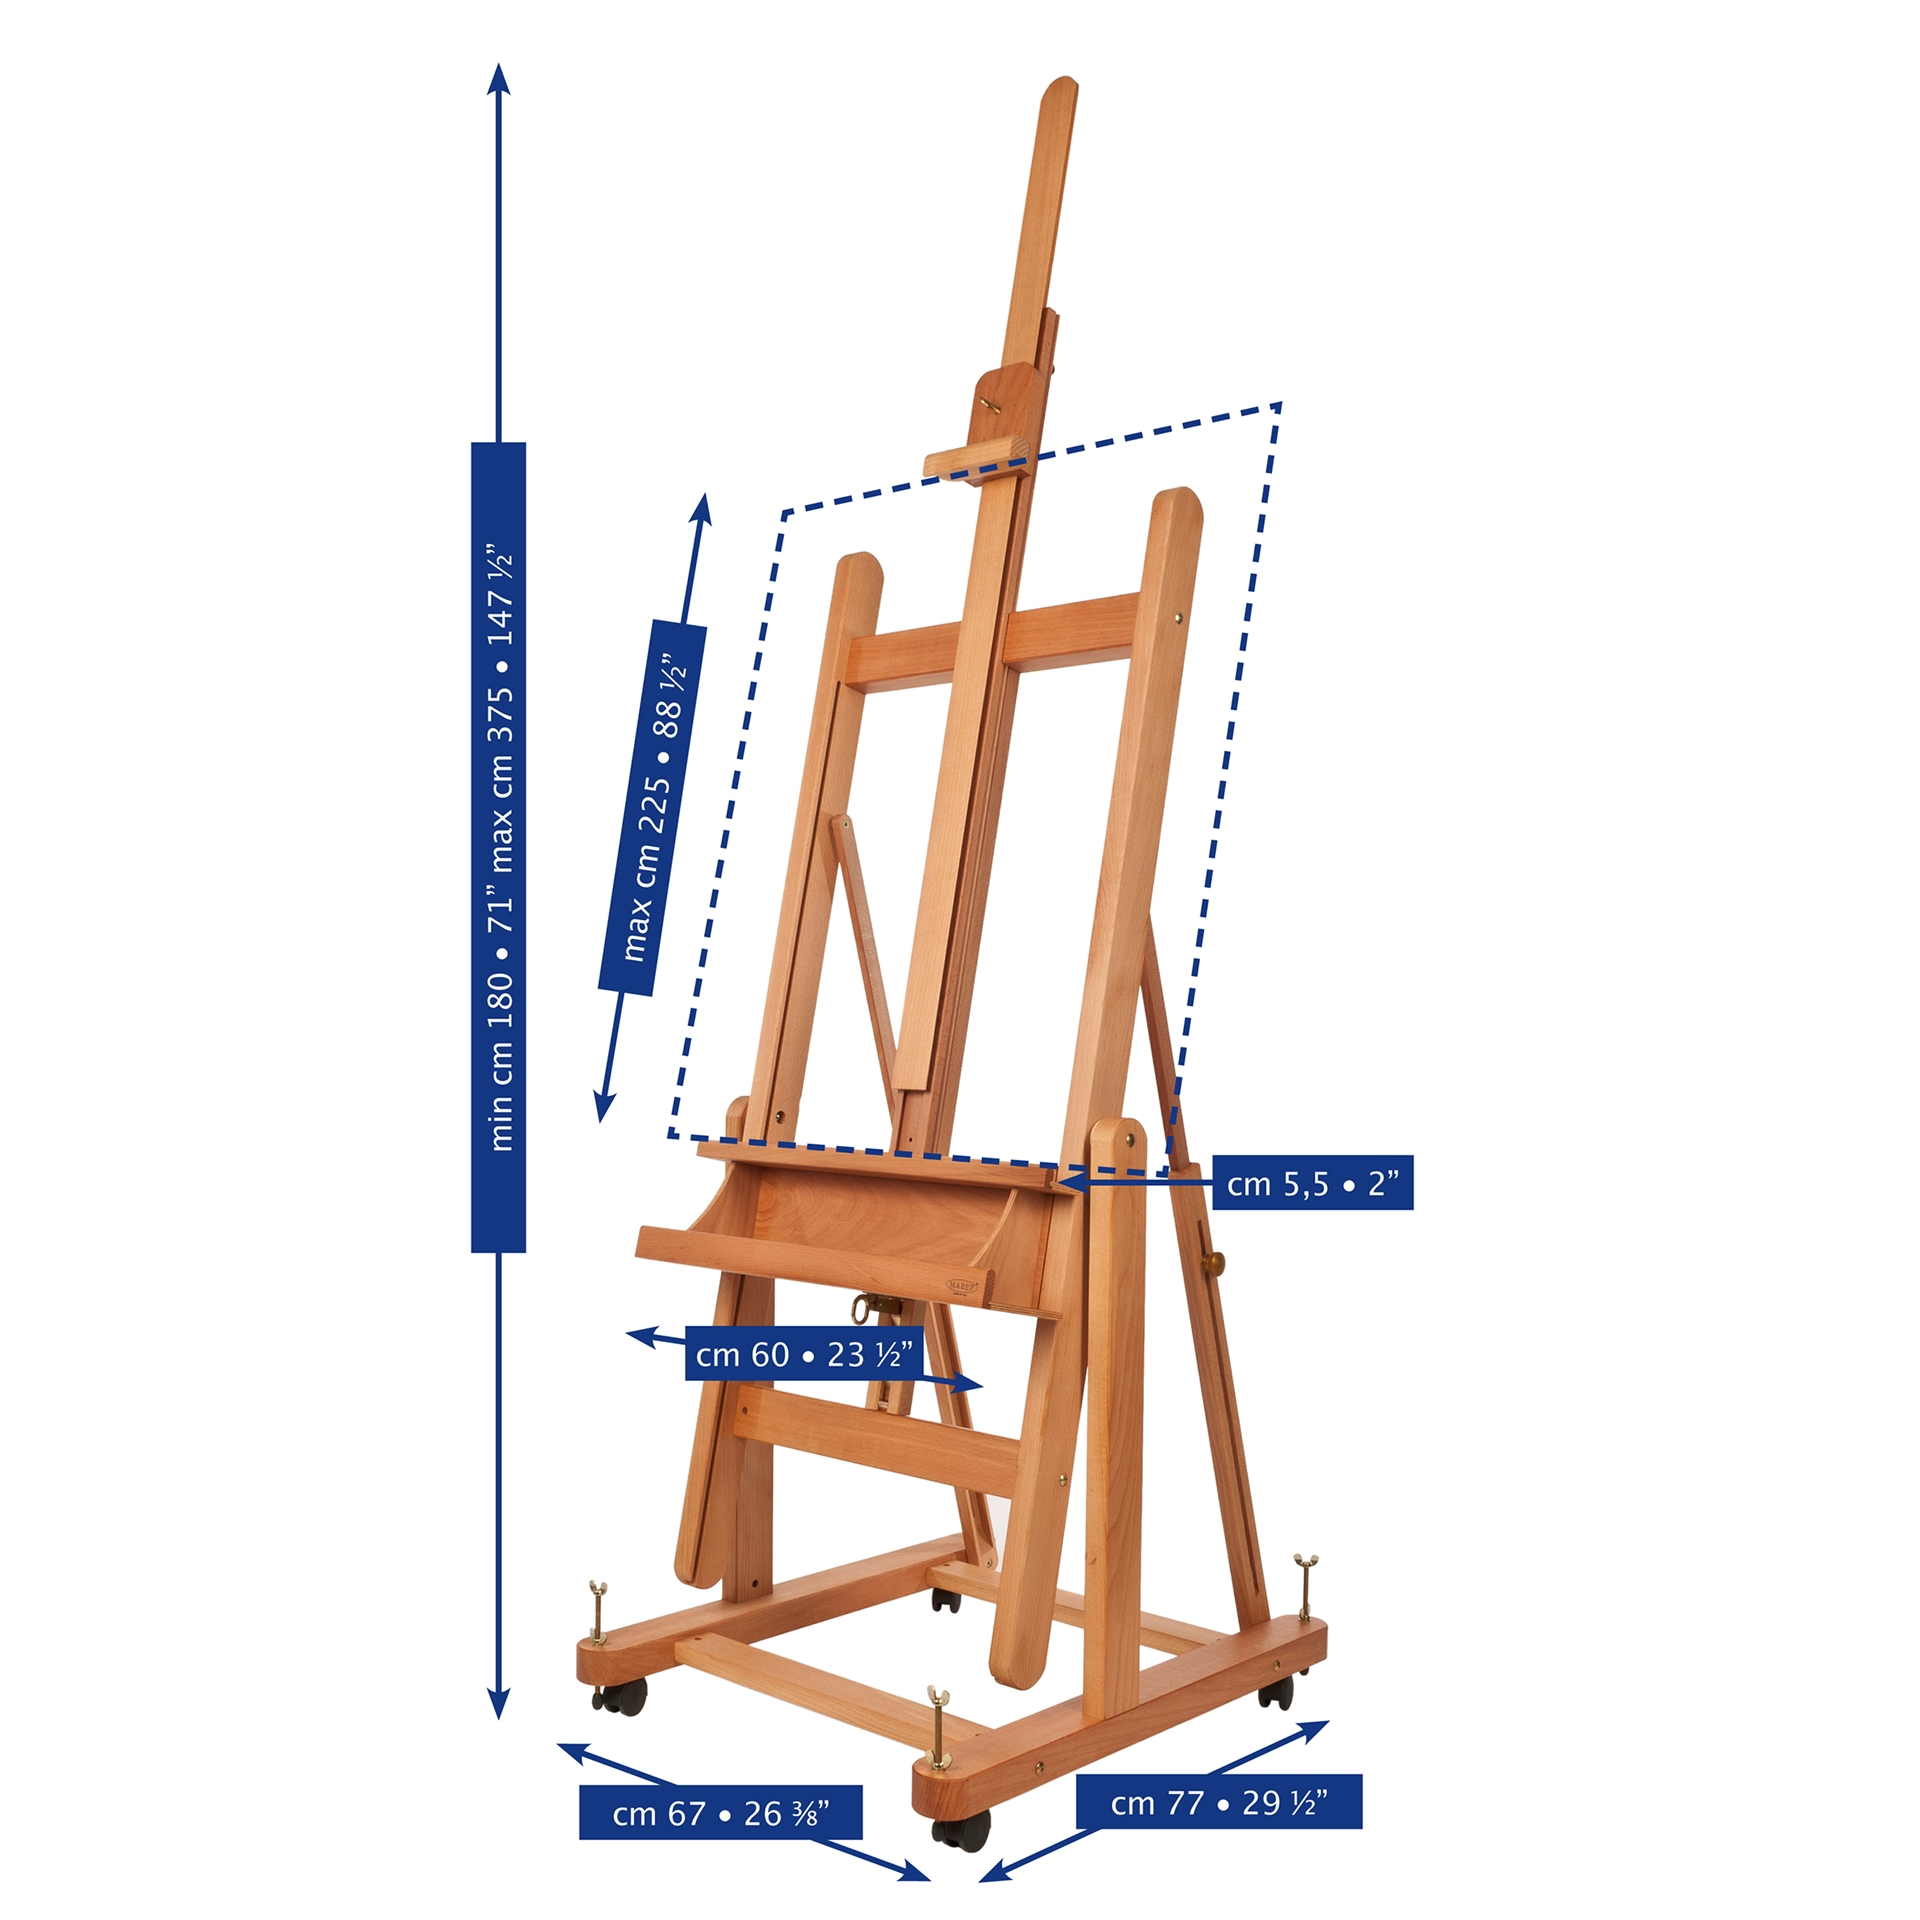 MABEF M-18 Convertible Studio easels are available from our warehouse and online at The PaintBox, home of the widest range of traditional and progressive Art Supplies in Adelaide. At The PaintBox we source and stock quality art supplies which we import directly. This means that you have access to a greater variety and pay less. These are perfect for any artists from amateur to professional. They are also perfect for any budget size. Check out our loyalty rewards programme, which makes your artistic ambitions achievable. At these prices why not give these a go. Be sure to check out our other fabulous finds on our website and start saving today. Our knowledgeable staff at The PaintBox can guide you through our carefully selected ranges of art supplies for all applications. This is only a small selection of our stock. We sell many brands, weights, and textures, in-store only. Please call 08 8388 7776 to enquire. We offer art tuition too! MABEF M18 CONVERTIBLE STUDIO EASELS CAN BE DELIVERED ANYWHERE WITHIN AUSTRALIA OR NEW ZEALAND Please Note: This product is classified as an Oversize or Bulky Item and will add significant freight surcharges, see below. Delivery time from our warehouse is14 days. We aim to make the shipping charge as cost effective as possible and to ensure you receive your art supplies in good condition. Please review our complete Shipping Policy information from the link in the footer for more details.